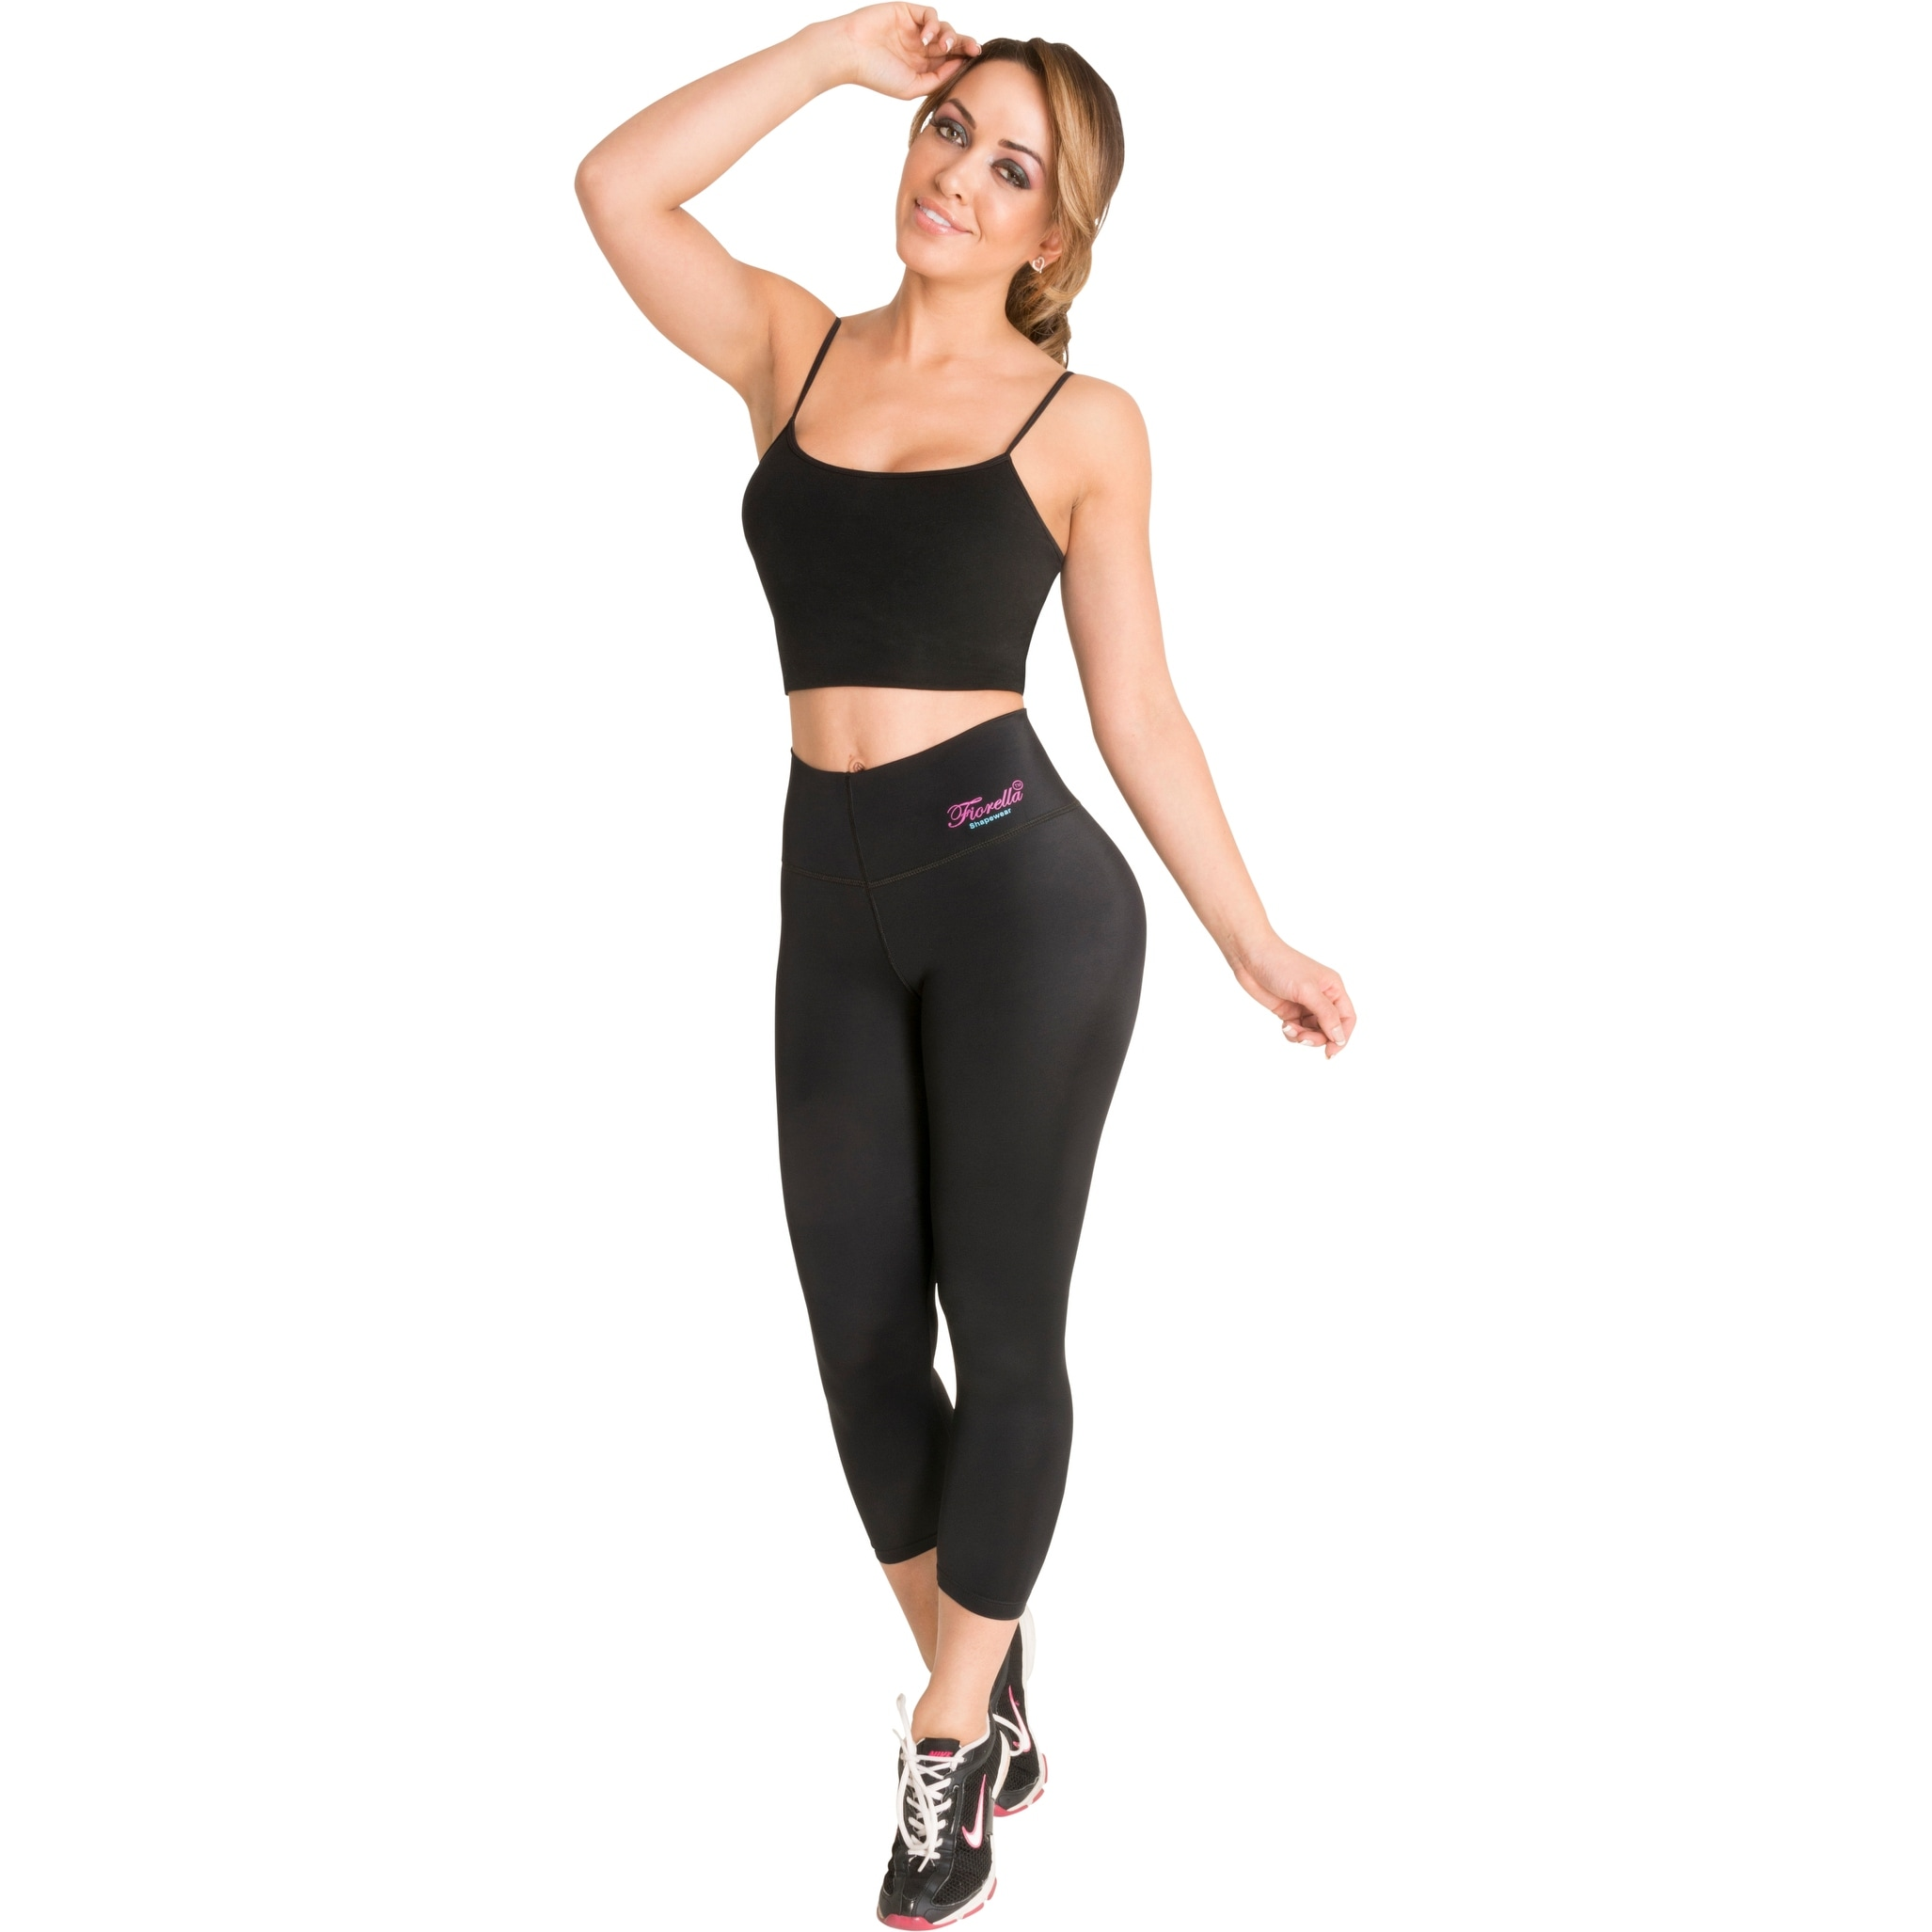 ce8710dc1 Shop Butt Lifter Leggings Capris with Internal High Rise Body Shaper  Powernet Levanta Cola Colombianos Bl - Free Shipping Today - Overstock -  18041596